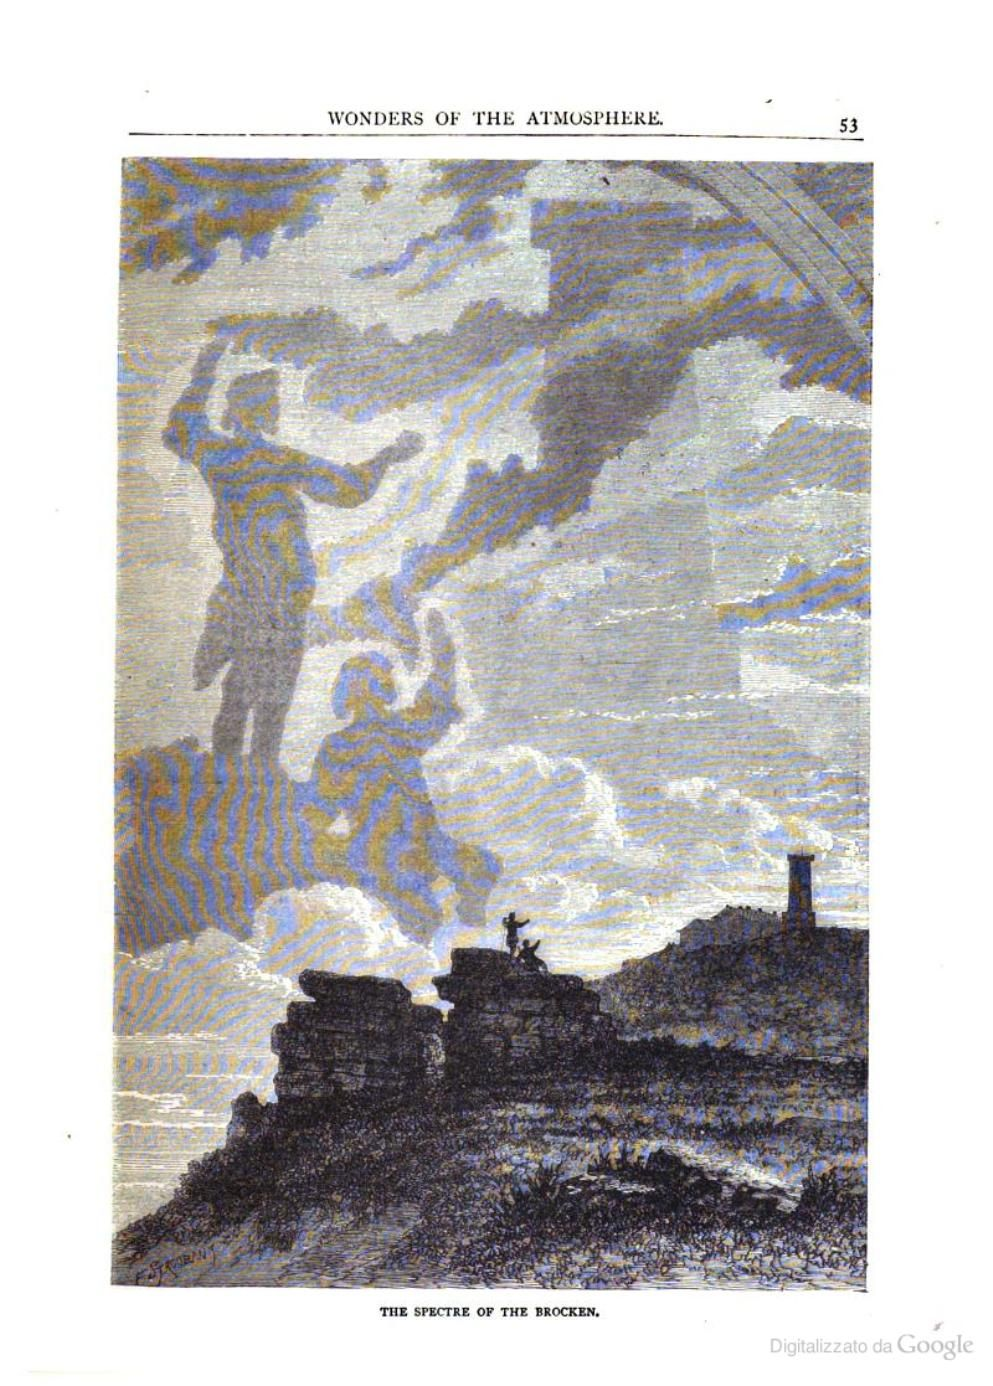 The spectre of the Brocken. From The world of wonders a